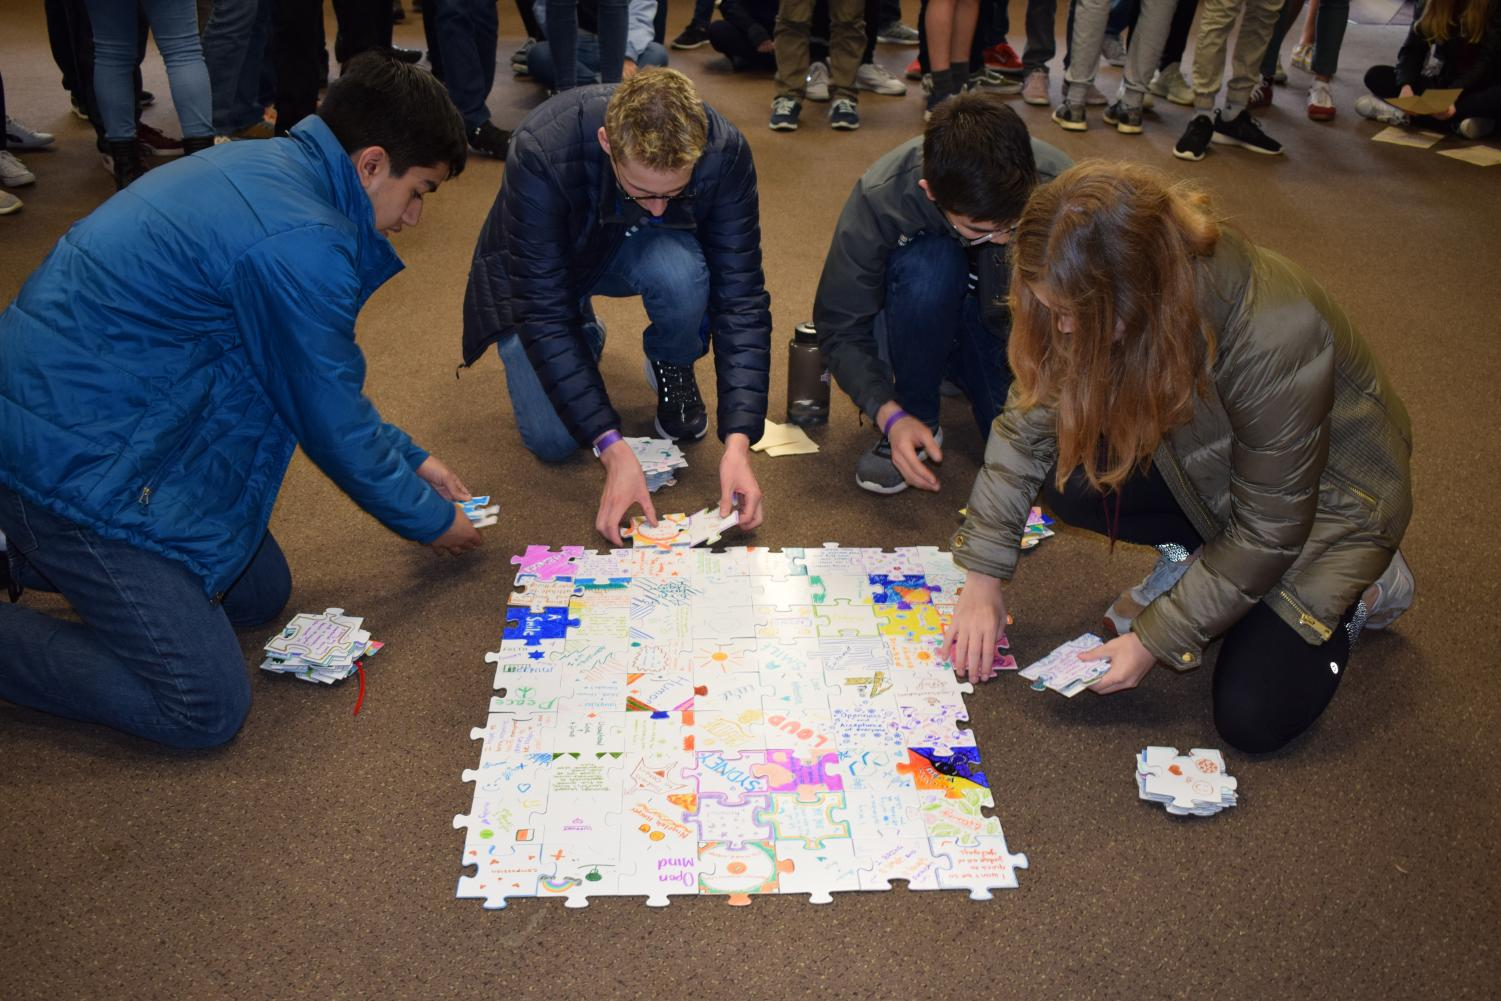 Junior Class vice president Suleyman Ahmed, Junior Class president Ben Cifu and Cultural Union representatives Kepler Boonstra and Ava Kucera disassemble a puzzle that was created by the junior class. Each individual student added a single puzzle piece describing what they brought to the grade, which was the culminating activity at junior retreat from April 9-11 at Camp Lake, Wisconsin. Juniors worked on various activities intended to foster bonds and give students a new perspective on their classmates.